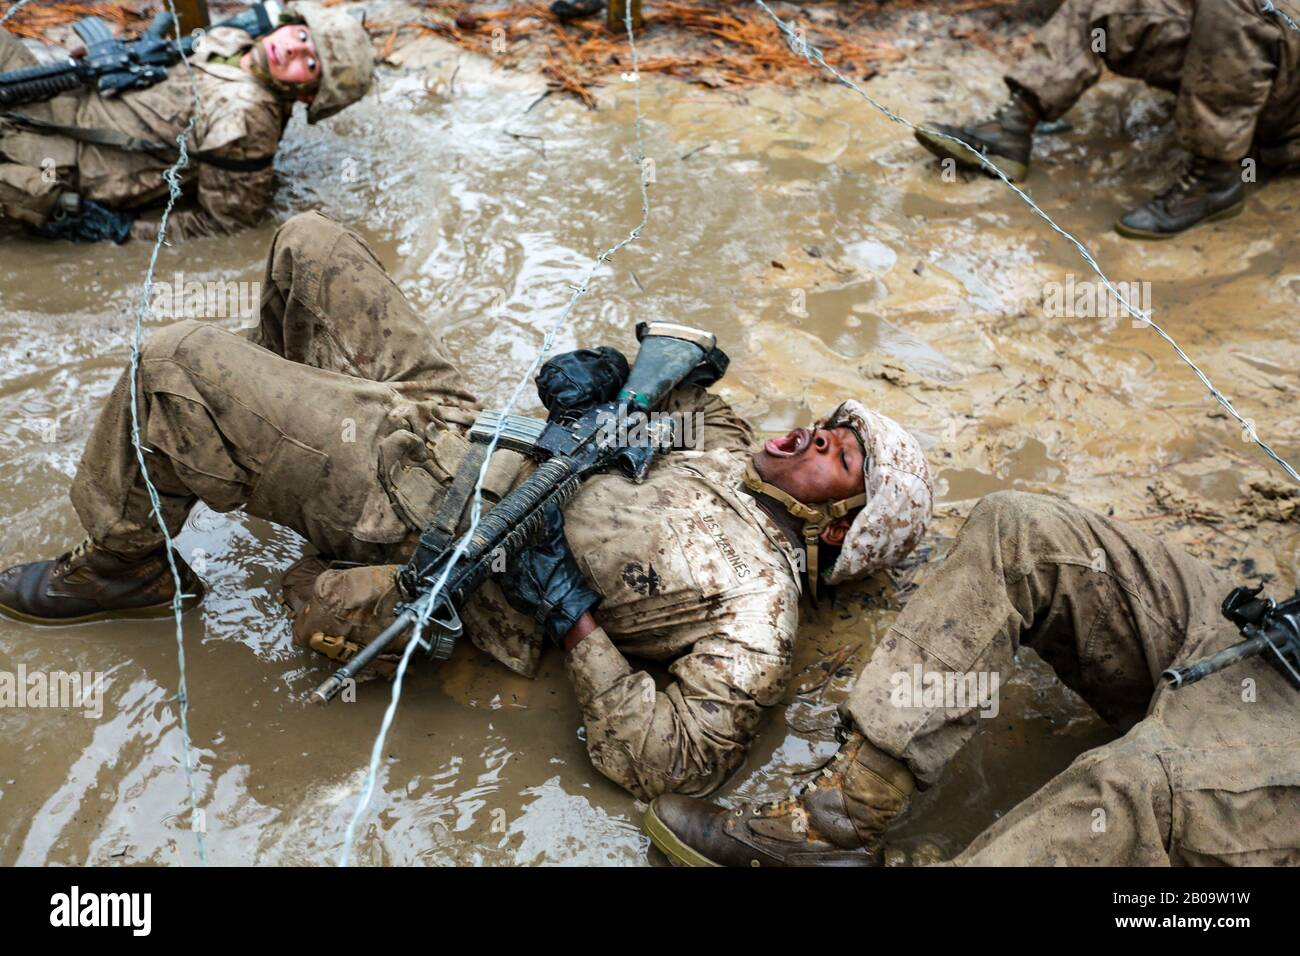 U.S. Marine Corps recruits with Delta Company, 1st Recruit Training Battalion maneuver through mud and barbed wire during the Combat Endurance Course December 21, 2019 at Marine Corps Recruit Depot Parris Island, South Carolina. Stock Photo